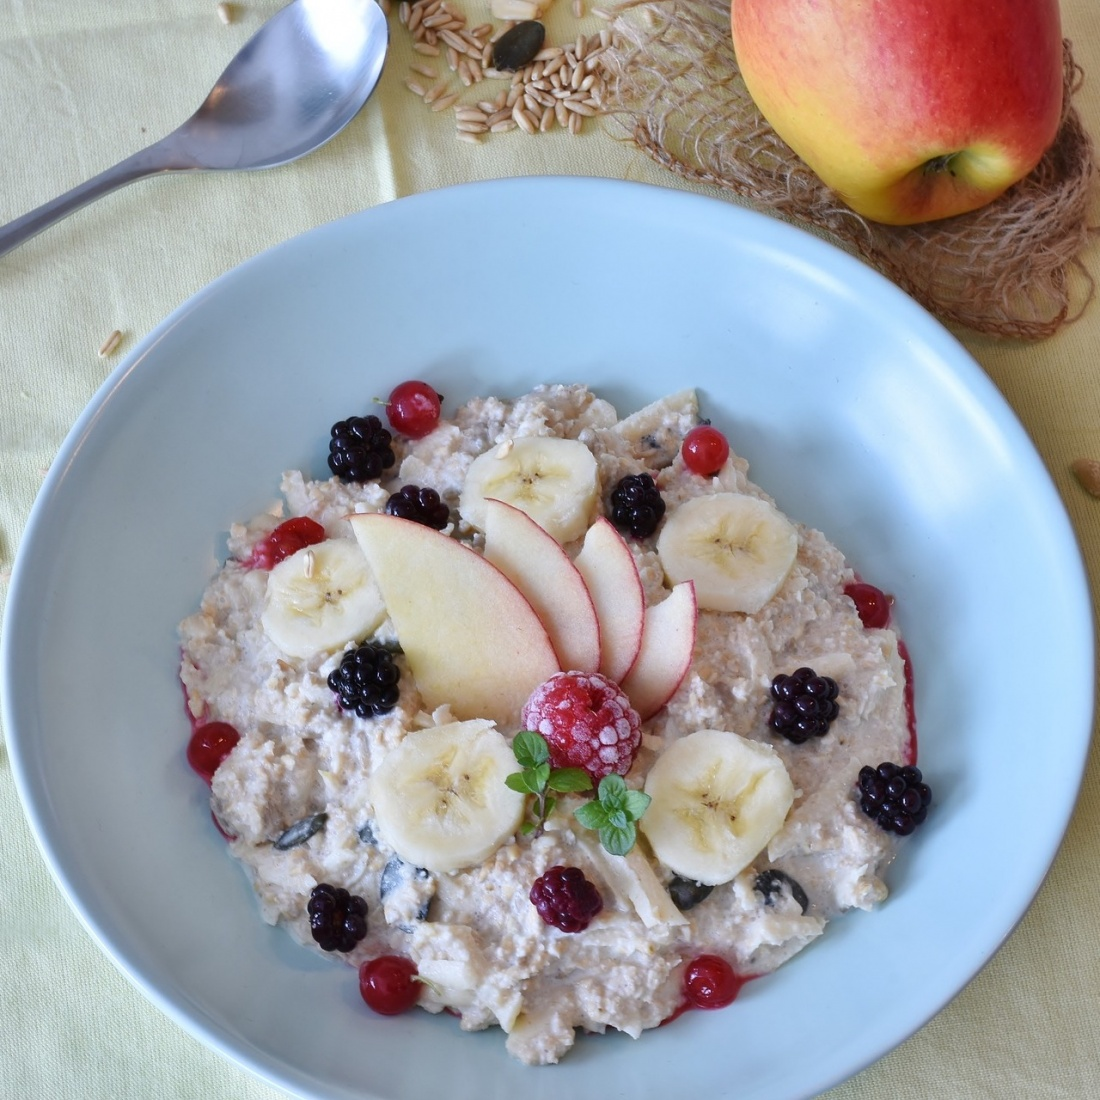 Fruit In Porridge